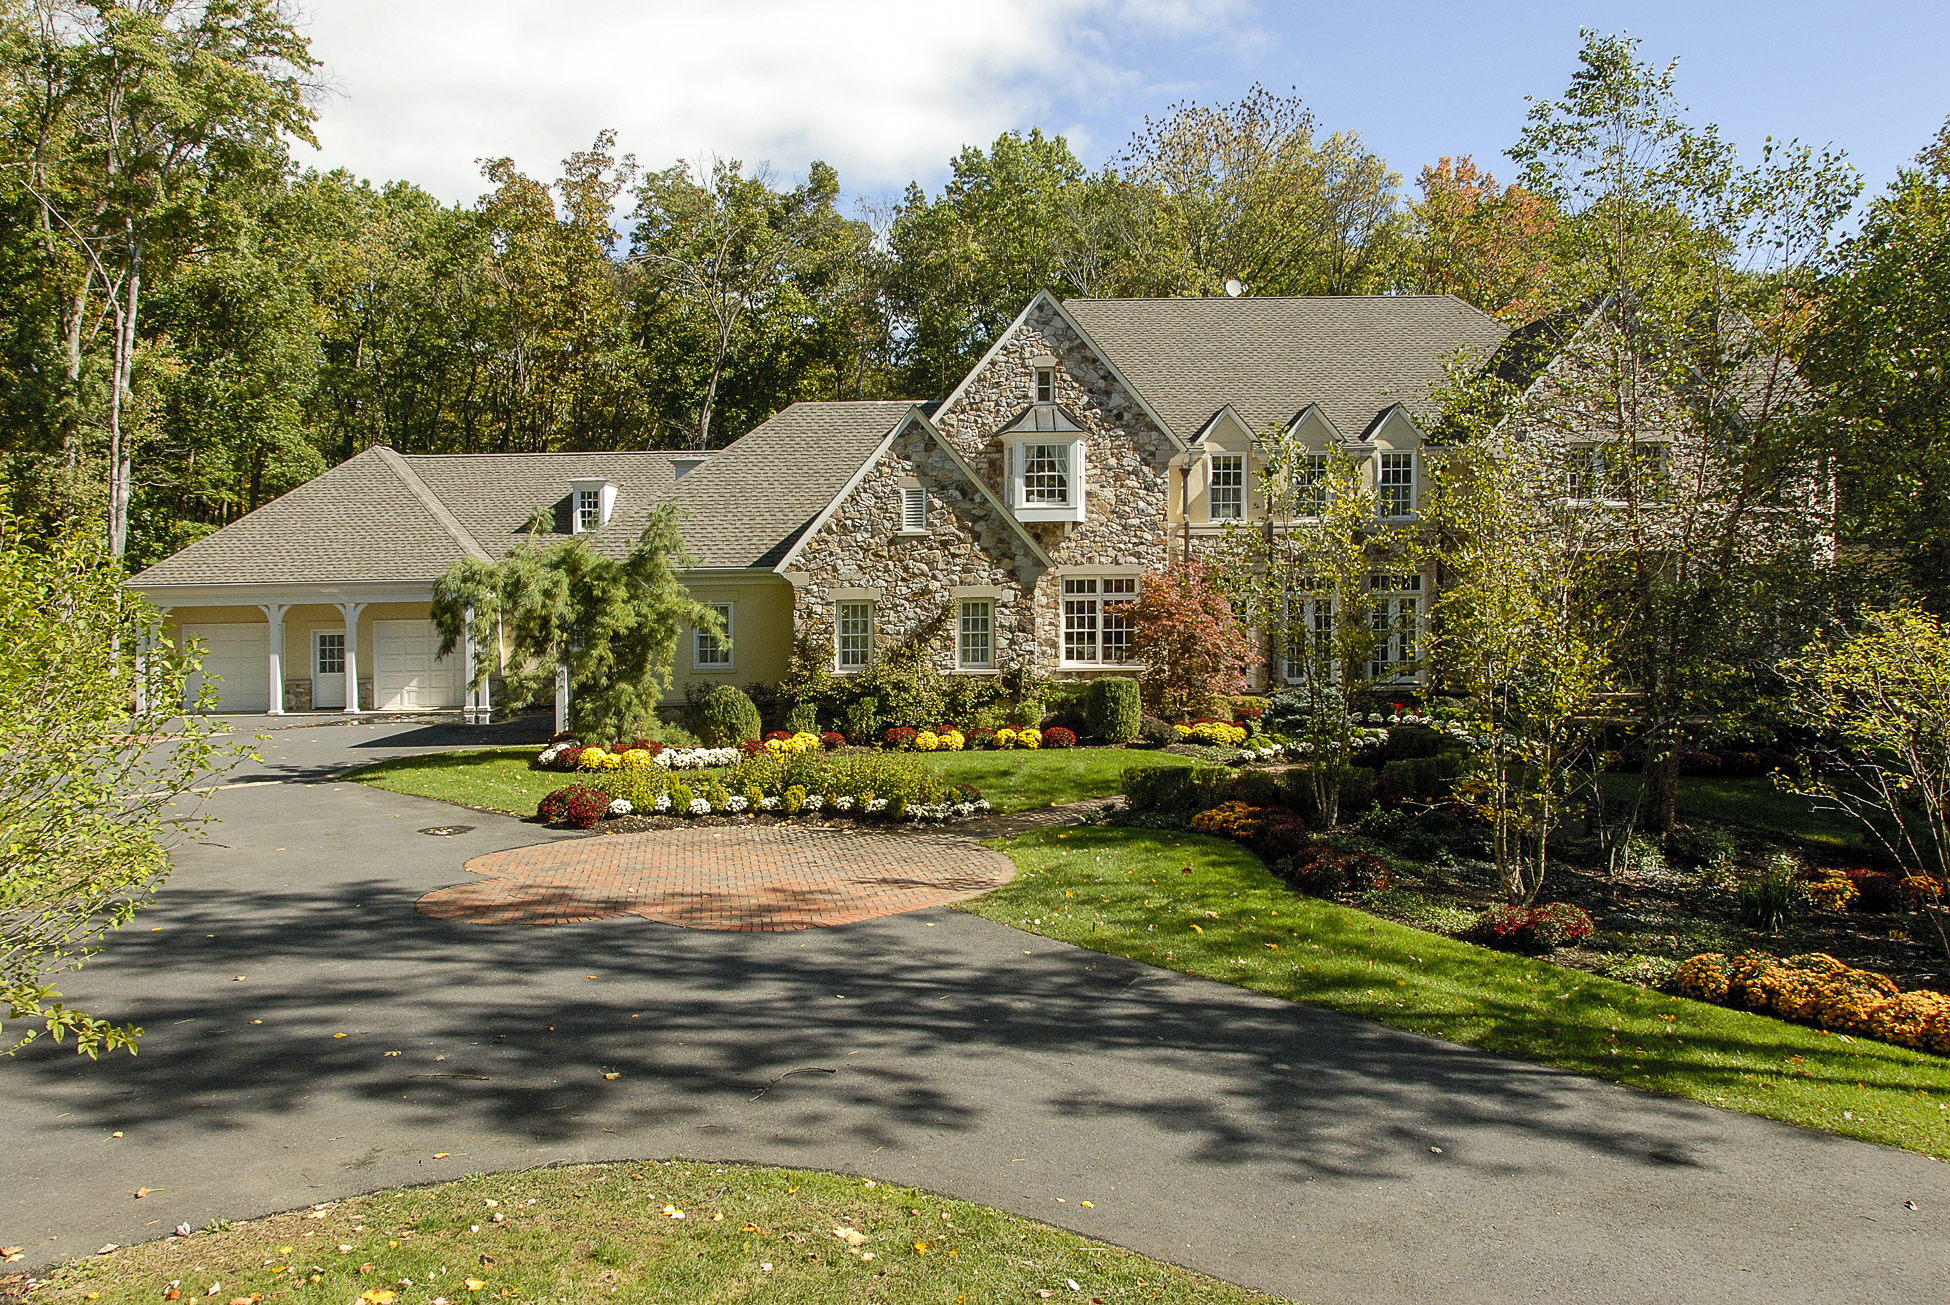 Maison unifamiliale pour l Vente à Magnificent Manor Home in Princeton's Coveted Rushbrook 27 Running Cedar Road Princeton, New Jersey, 08540 États-Unis